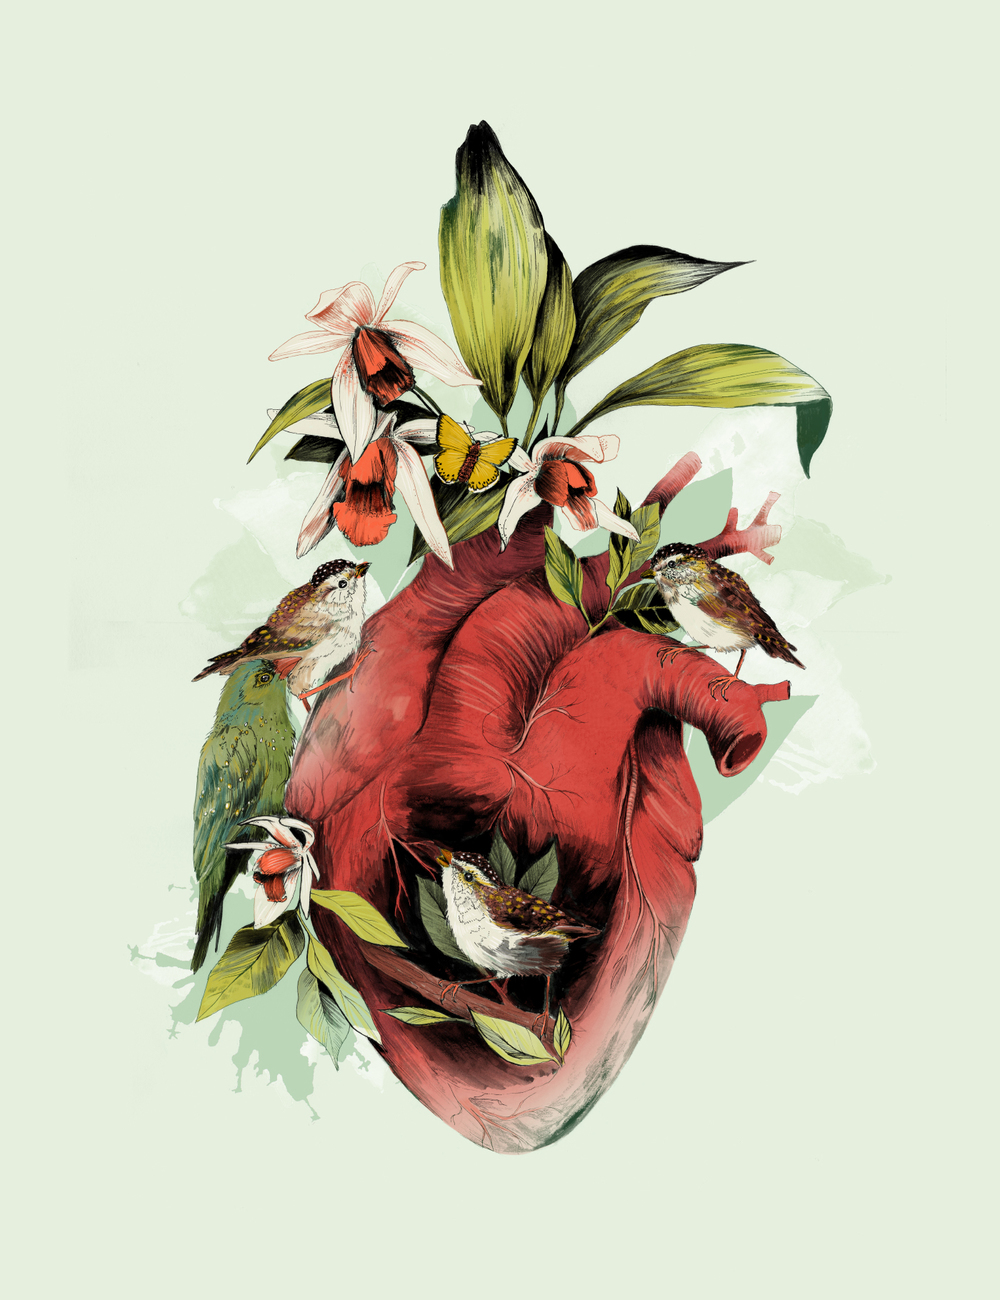 fig. 1. Heart Of Birds, anatomical heart with orchids and birds